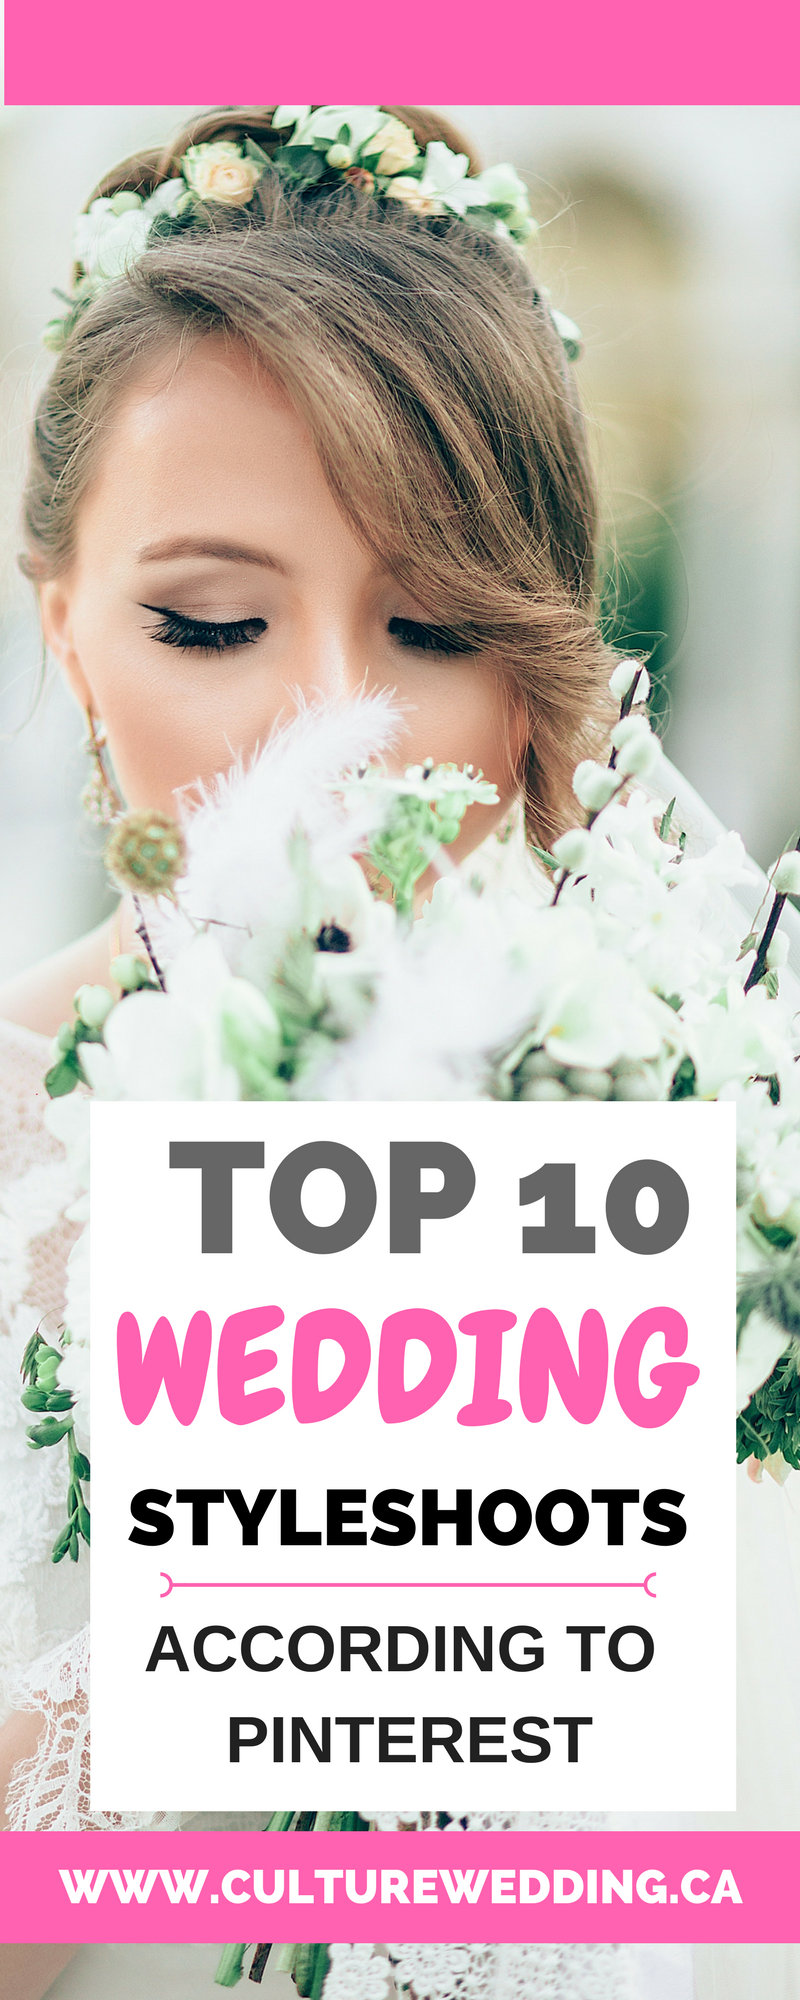 Top 10 wedding style shoot according to Pinterest